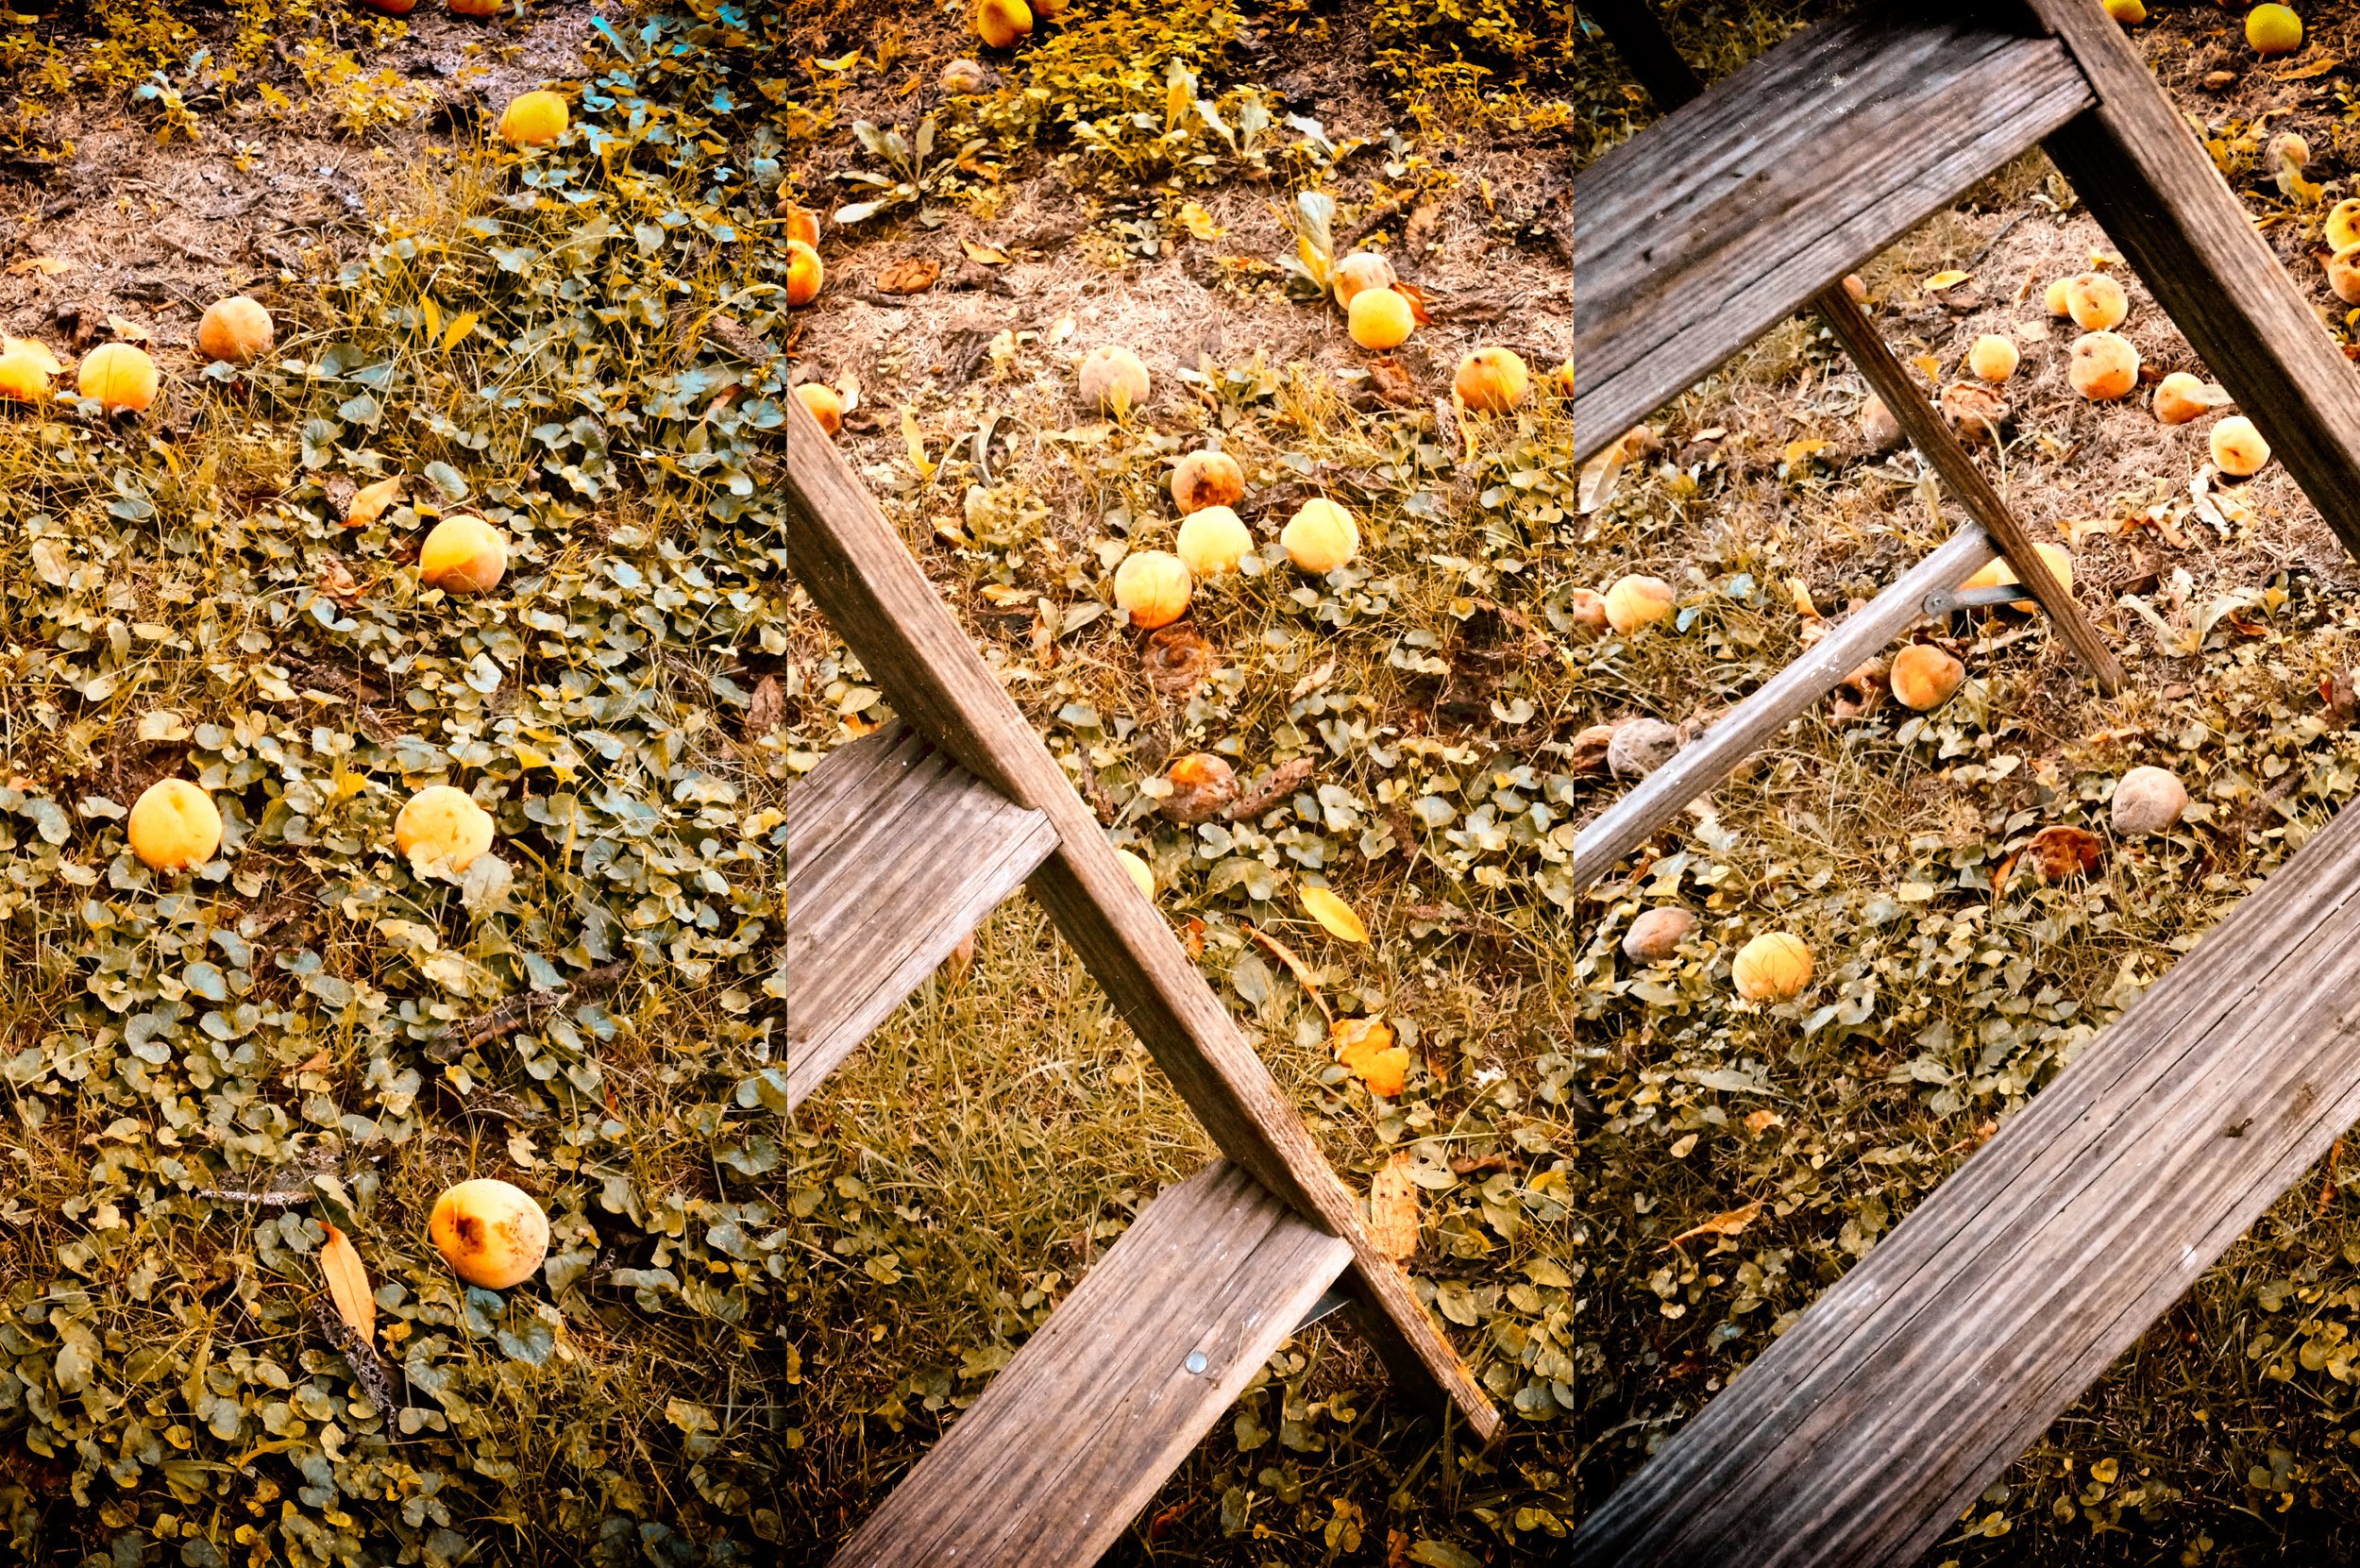 Ladder and Leftover Peach Harvest Triptych 8-26-17.jpg